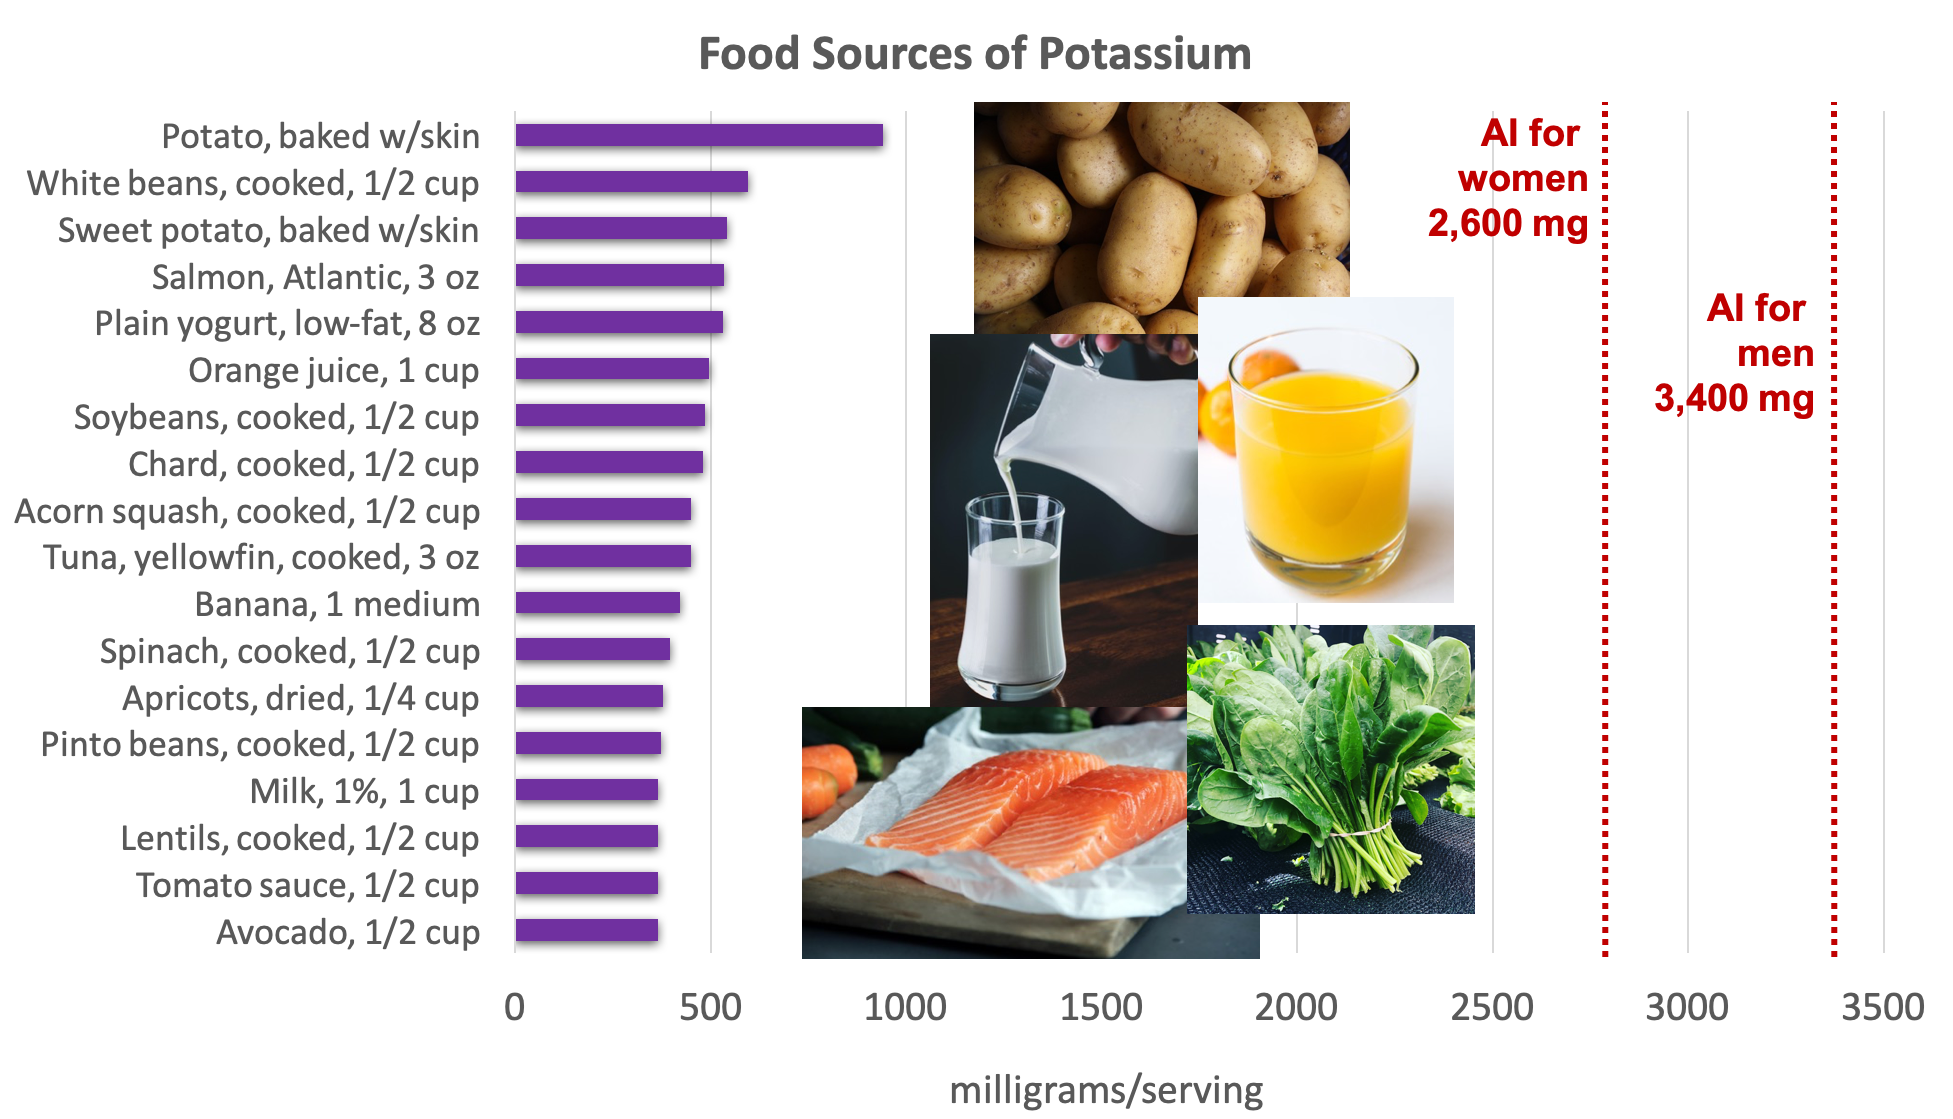 Bar graph showing dietary sources of potassium compared with the AI for adults of 2,600 mg for women and 3,400 mg per day for men. Top sources include vegetables (potatoes, spinach, chard), fruit (orange juice, dried apricots), beans, salmon, and dairy (yogurt and milk). Photos are shown of potatoes, milk, orange juice, salmon, and chard.